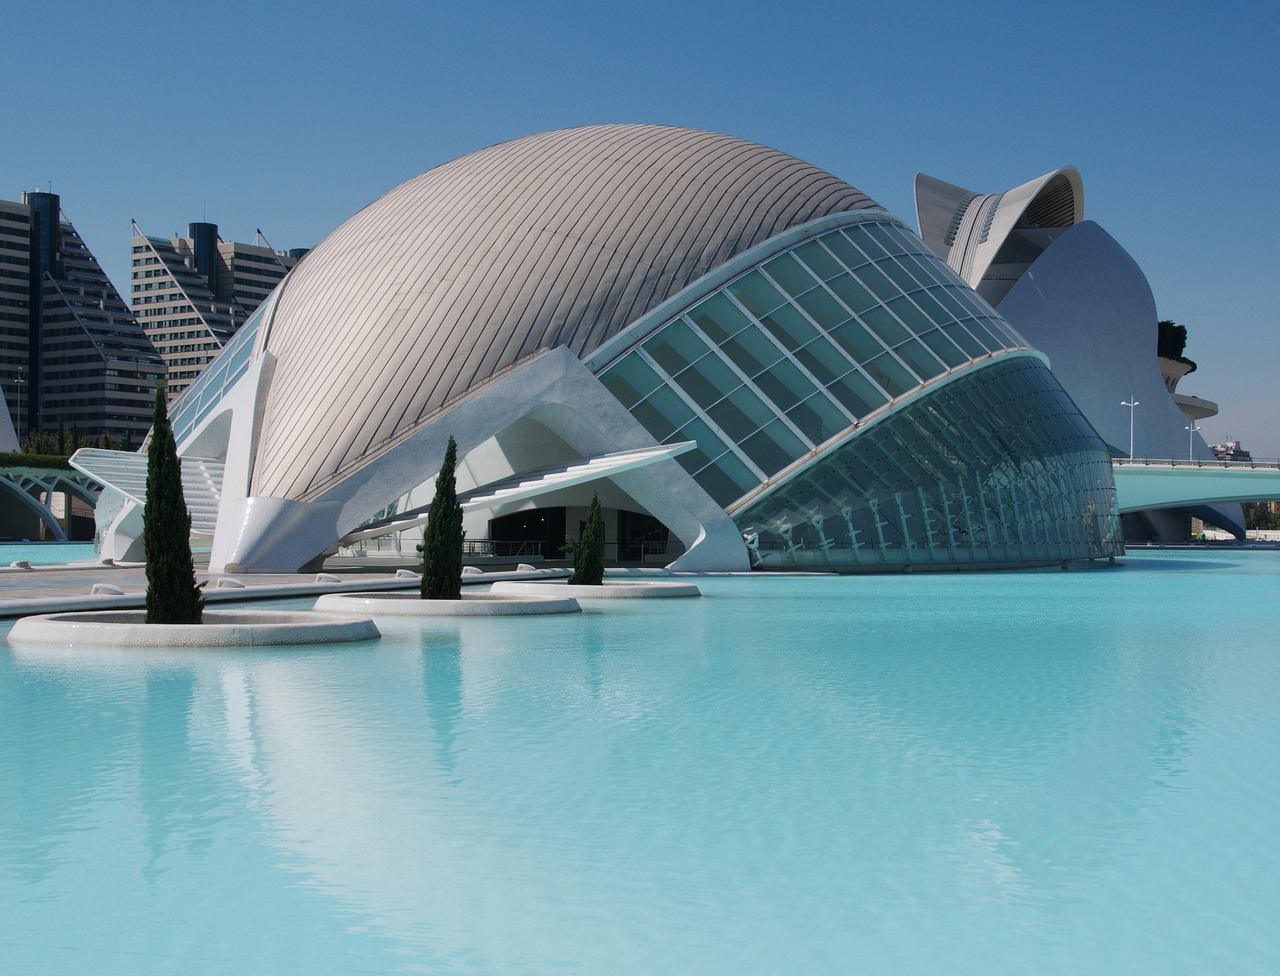 Valenica's beautiful City of Arts and Science makes it a city worth visiting on a family vacation in Europe.